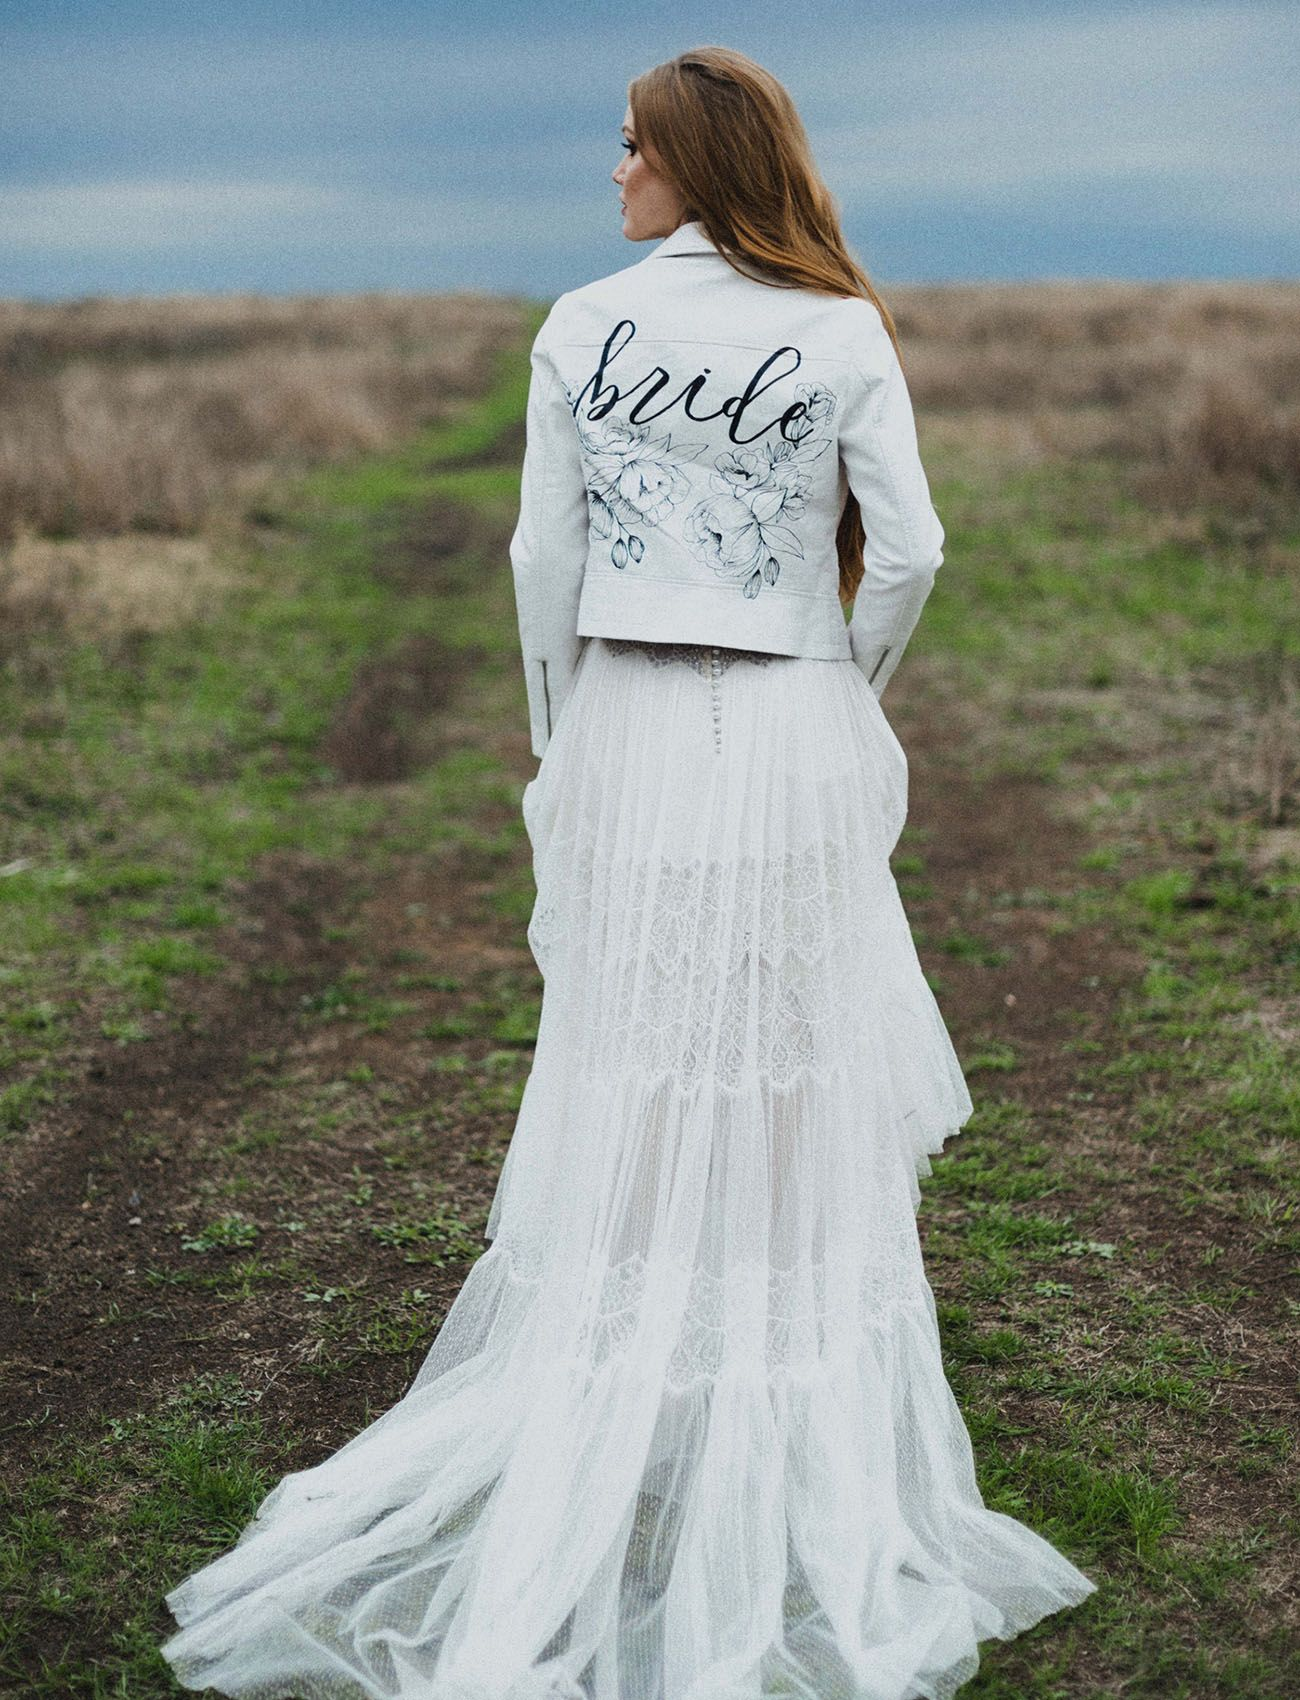 79ac1cd1165 Wild + Free Gypsy Inspired Elopement